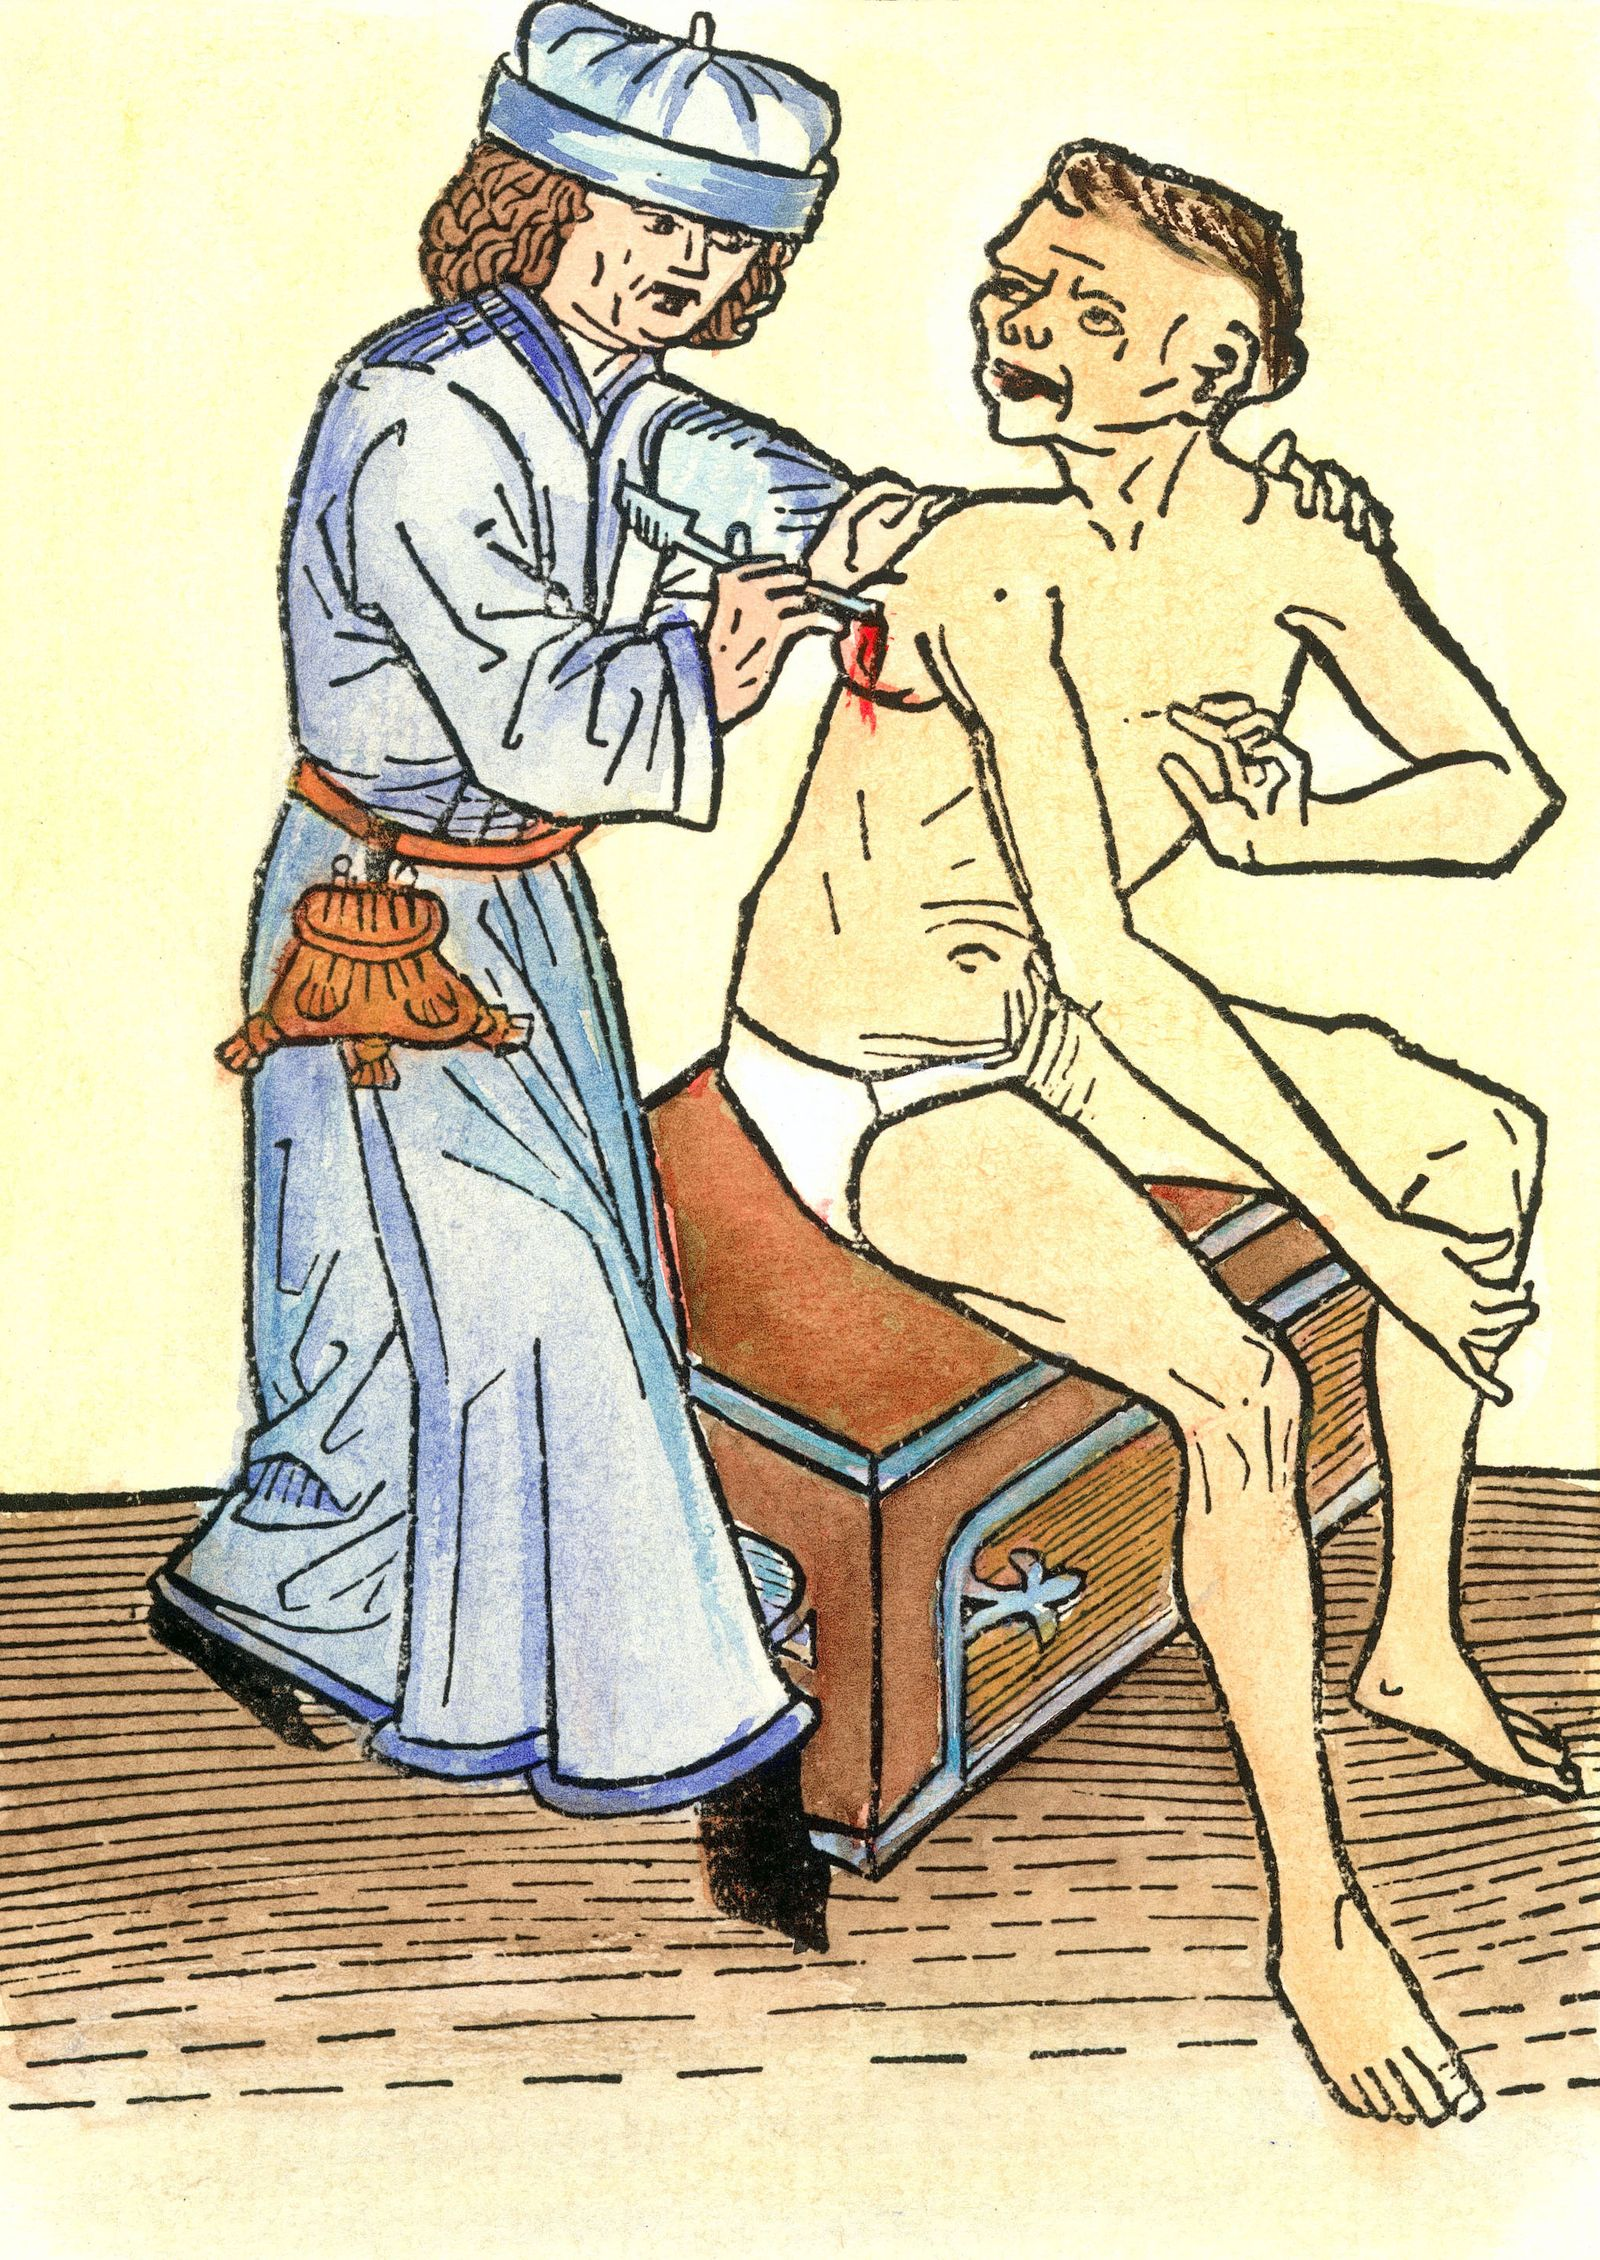 PLAGUE PHYSICIAN, 1482. /nA physician lancing a plague-caused bubo, which probably increased the likelihood of spreading the disease. Color German woodcut, 1482.